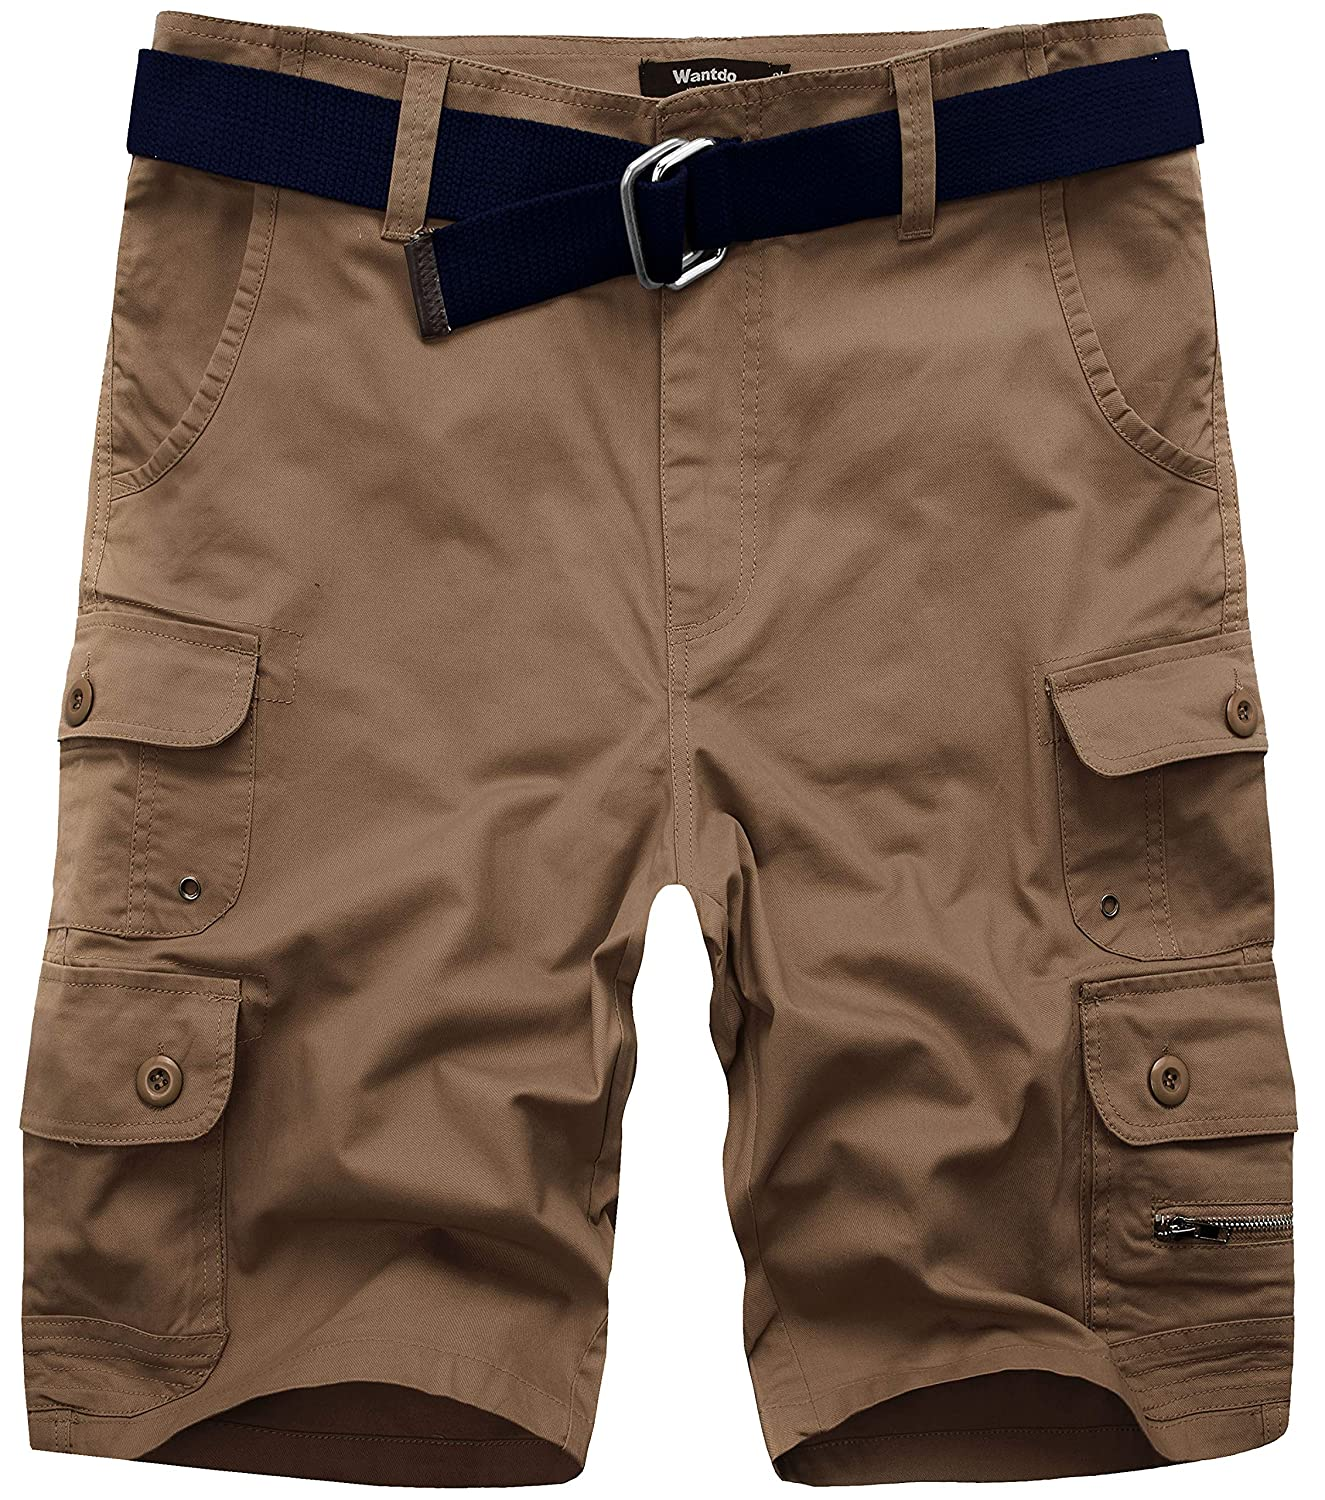 Wantdo Men's Summer Belted Cotton Work Shorts Loose Fit Cargo Shorts WDNZ125